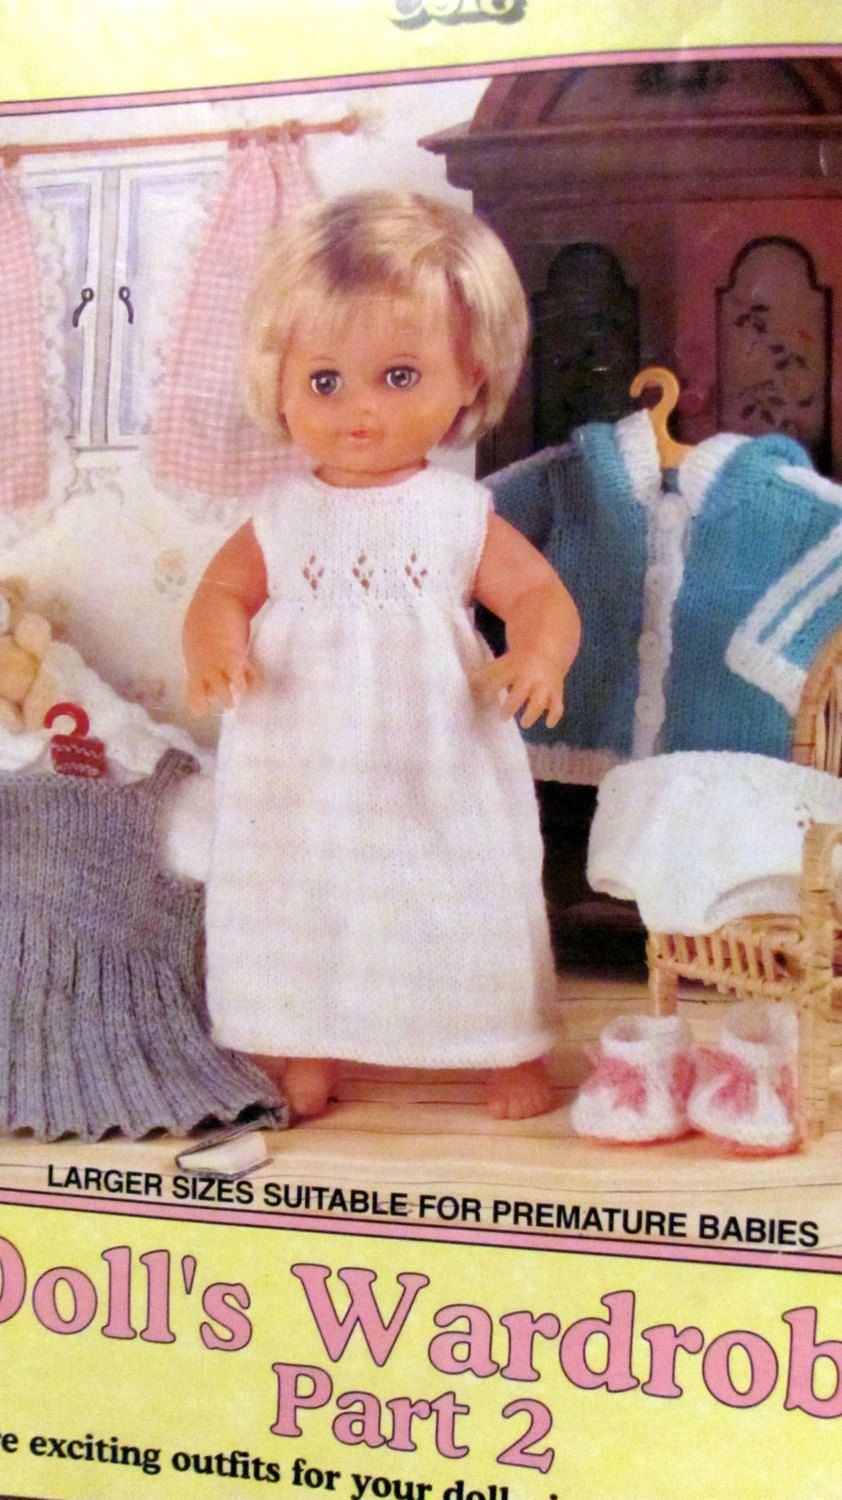 Dolls wardrobe part 2 knitting patterns 13 doll clothes dolls wardrobe part knitting patterns 13 doll clothes patterns larger sizes suitable for premature baby clothes king cole 620 by onceuponanheirloom on bankloansurffo Choice Image